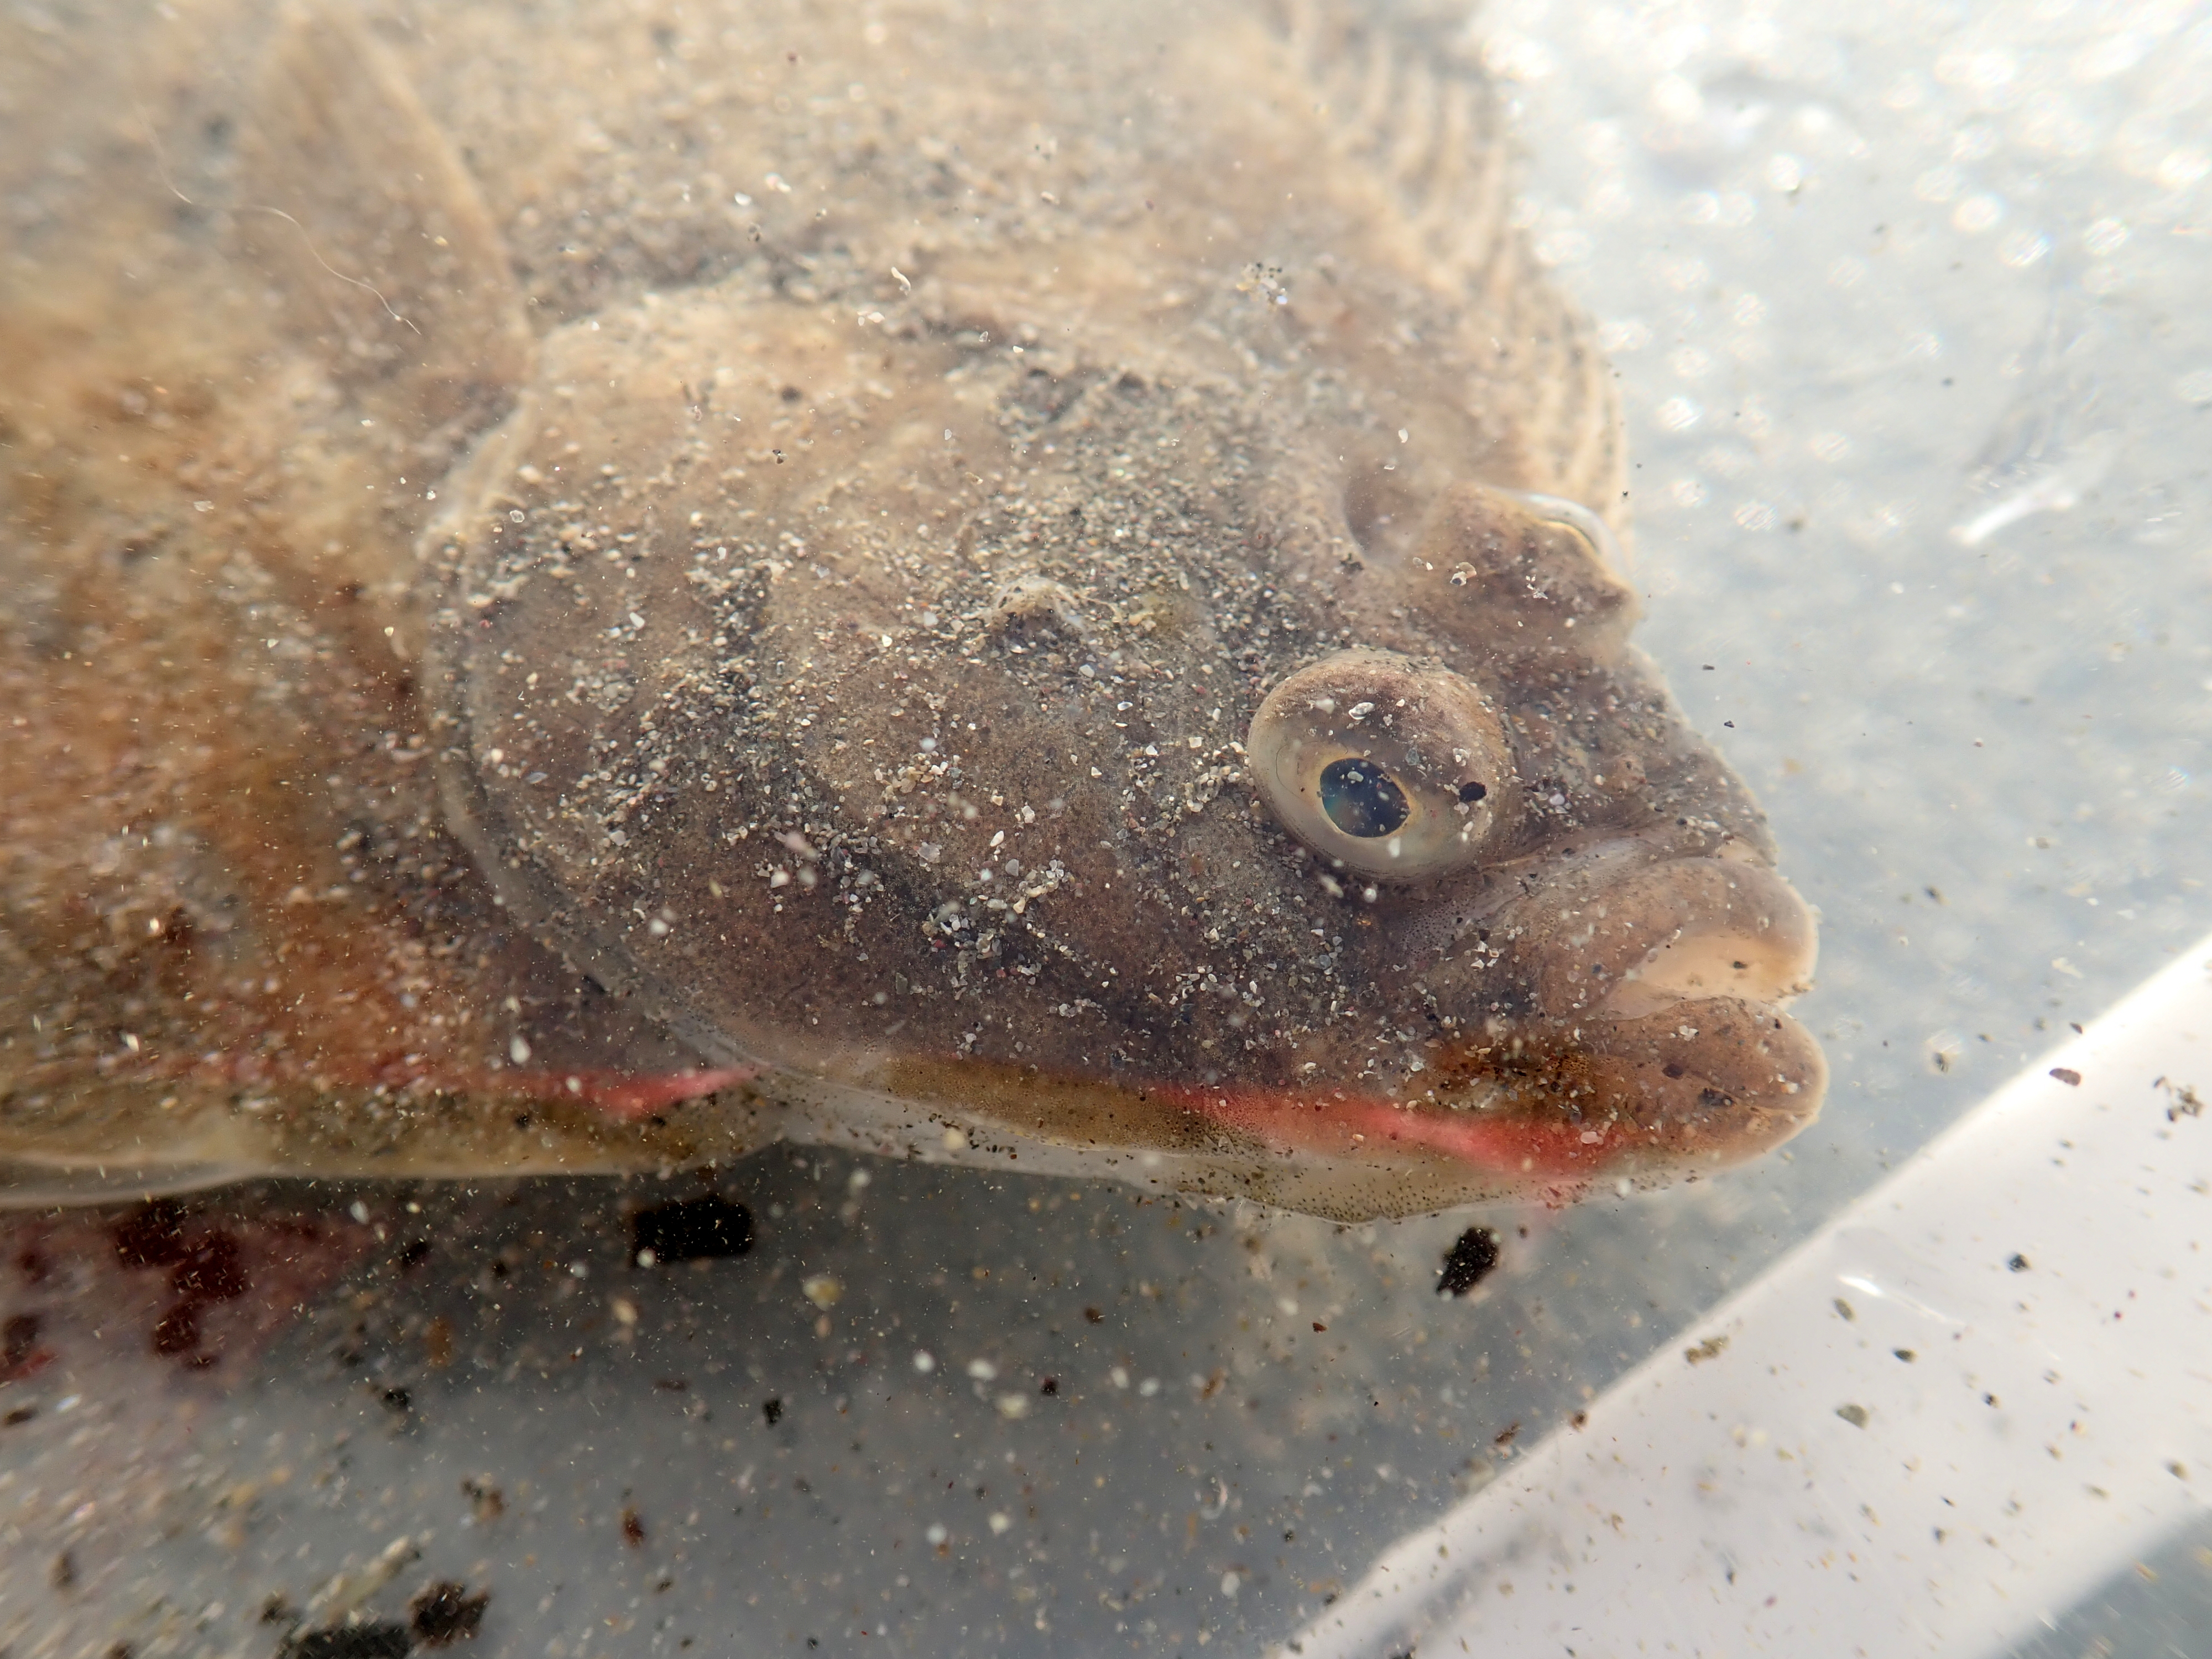 The upturned flounder revived considerably once it was in some water.